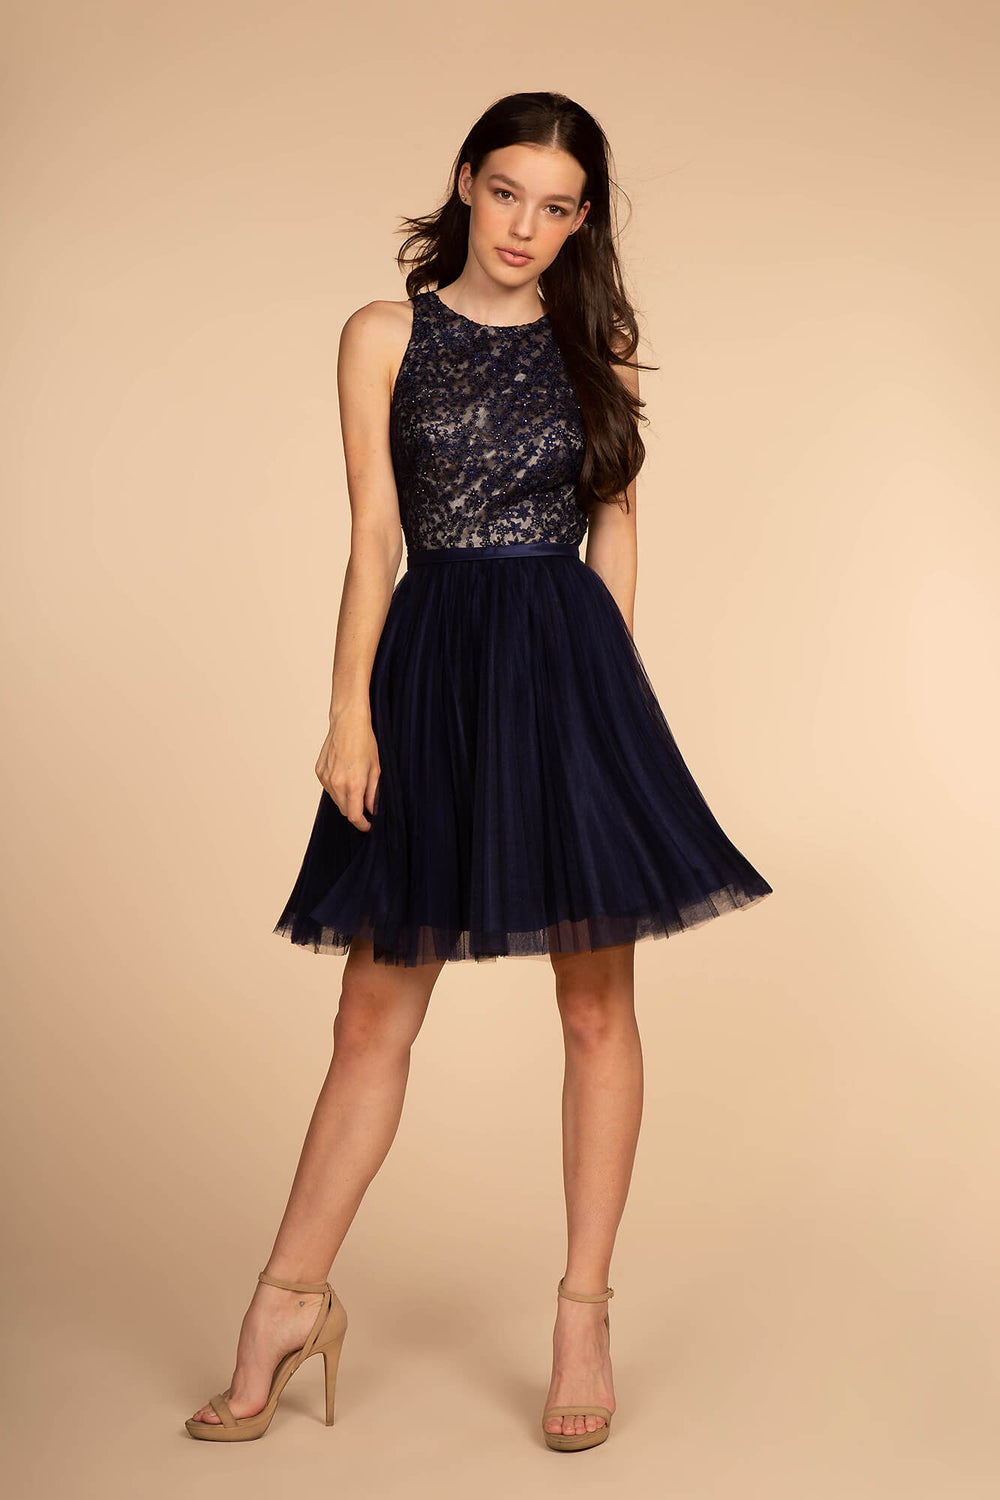 Short Prom Dress Homecoming - The Dress Outlet Navy